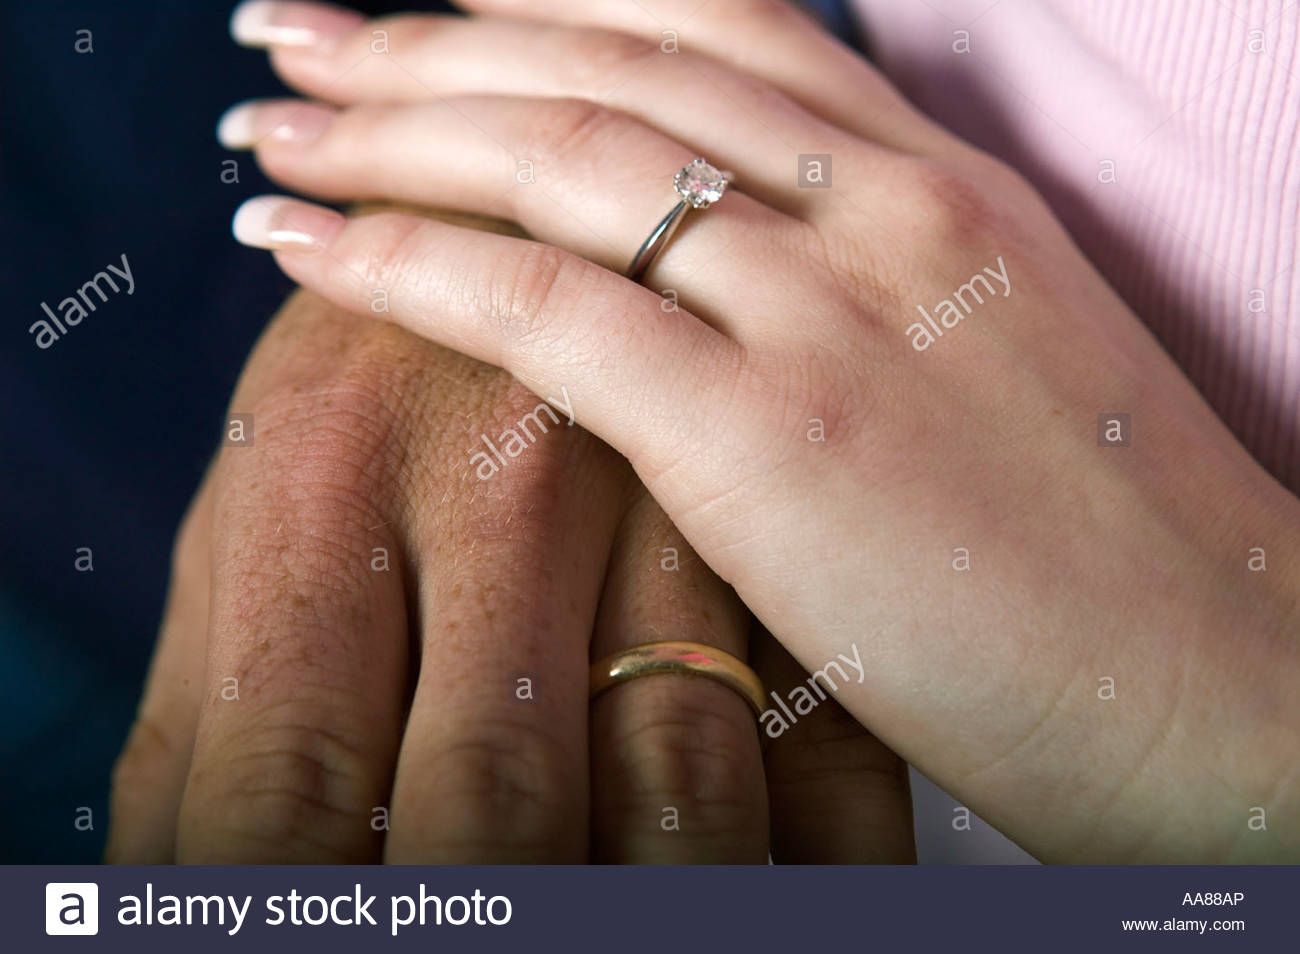 couple wearing wedding rings holding hands - Wedding Rings On Hands